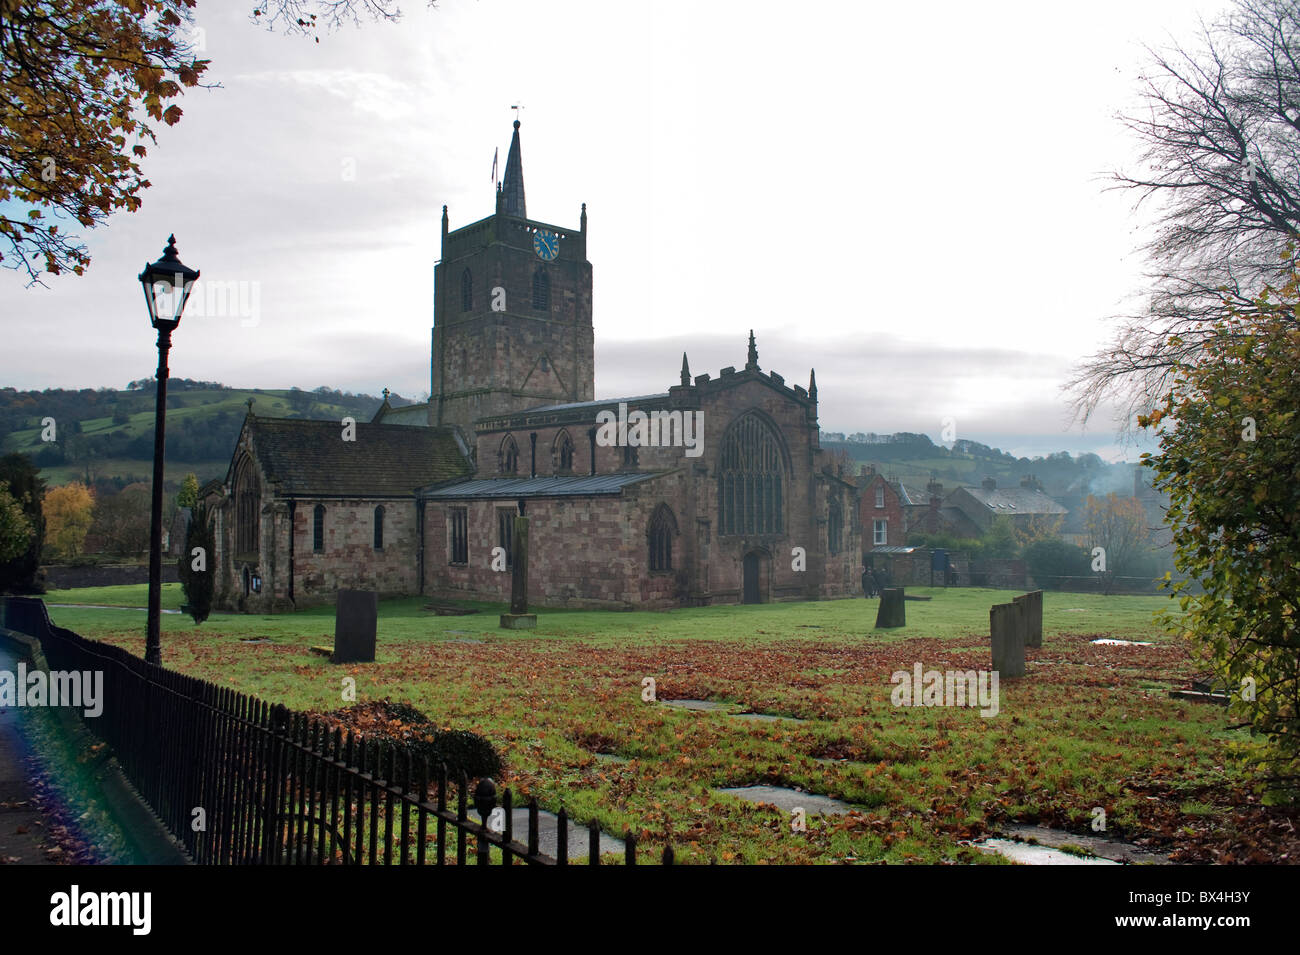 St. Mary's Church and churchyard, Wirksworth, Derbyshire - Stock Image